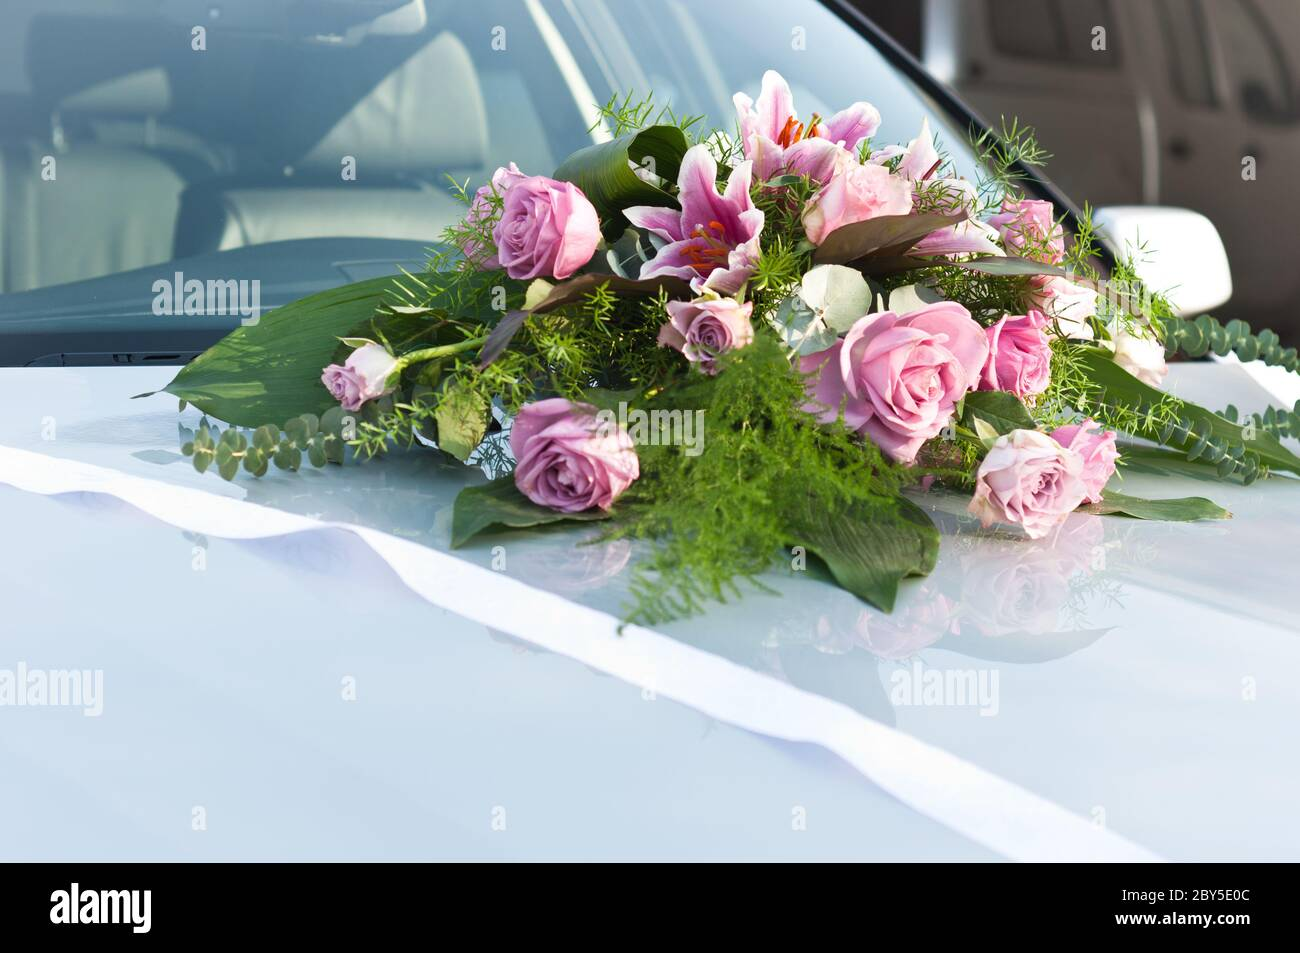 Wedding Car Flowers Decoration High Resolution Stock Photography And Images Alamy